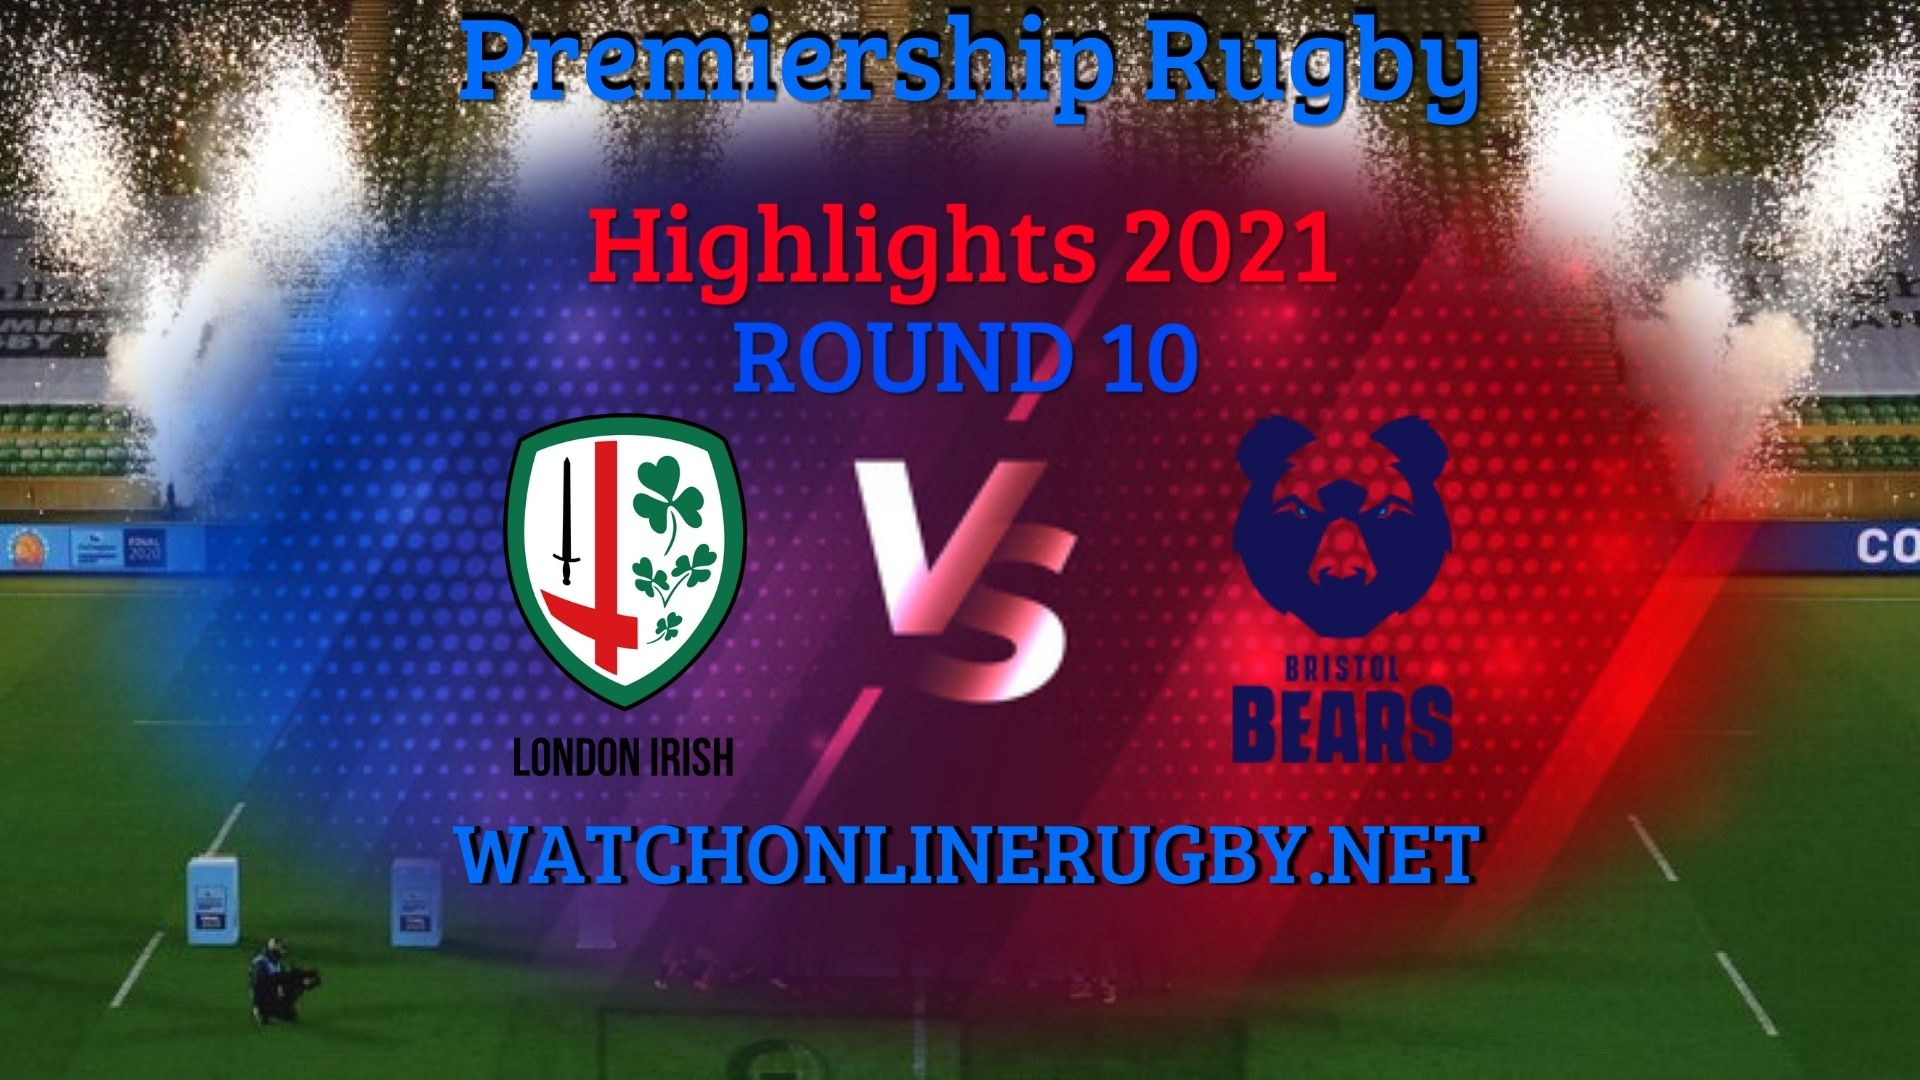 London Irish Vs Bristol Bears Premiership Rugby 2021 RD 10